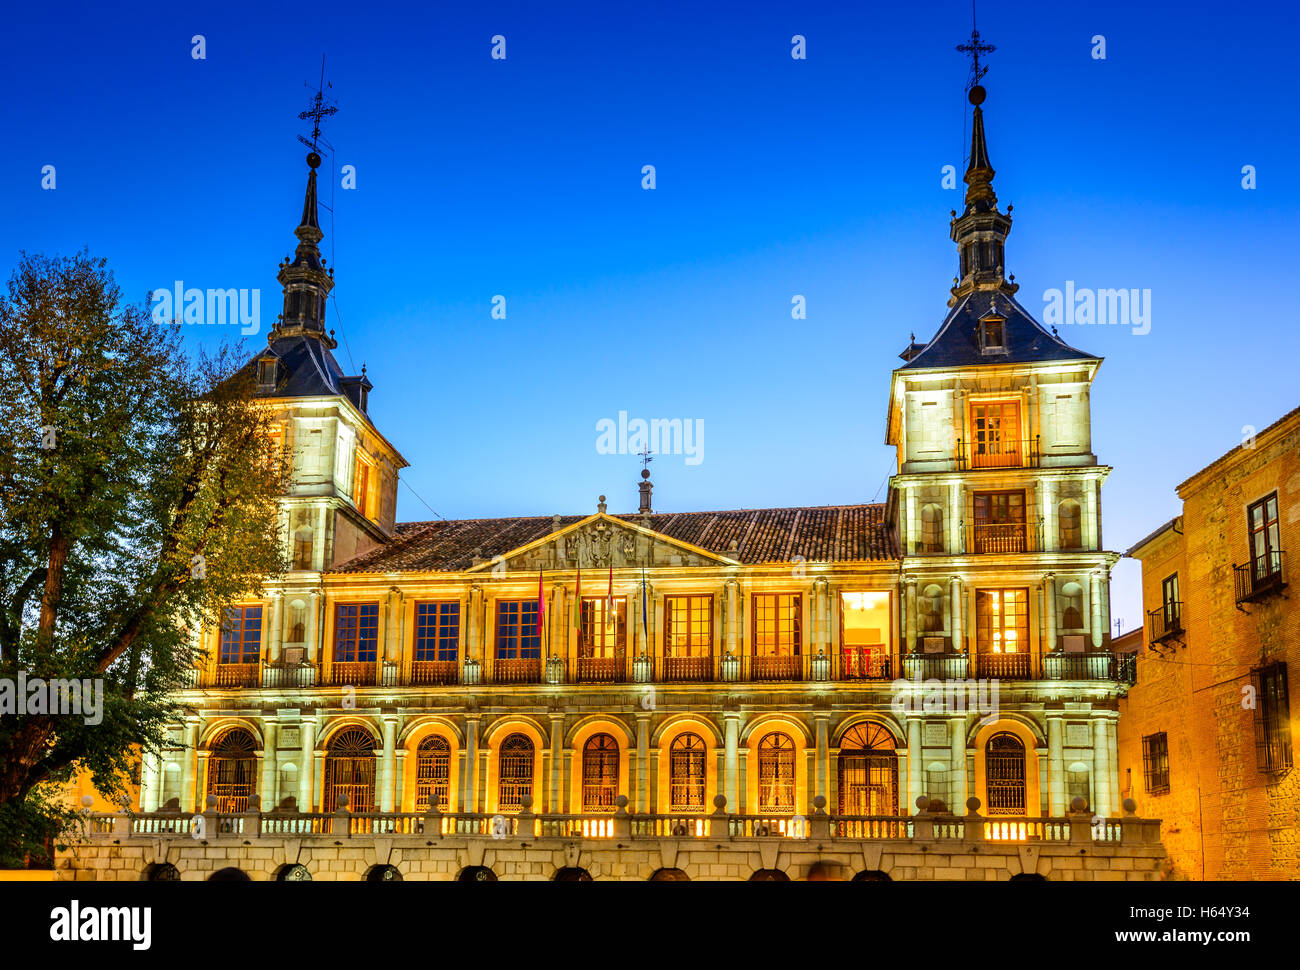 Toledo, Spain. Evening light at Plaza del Ayuntamiento in front of the Cathedral of Saint Mary. - Stock Image